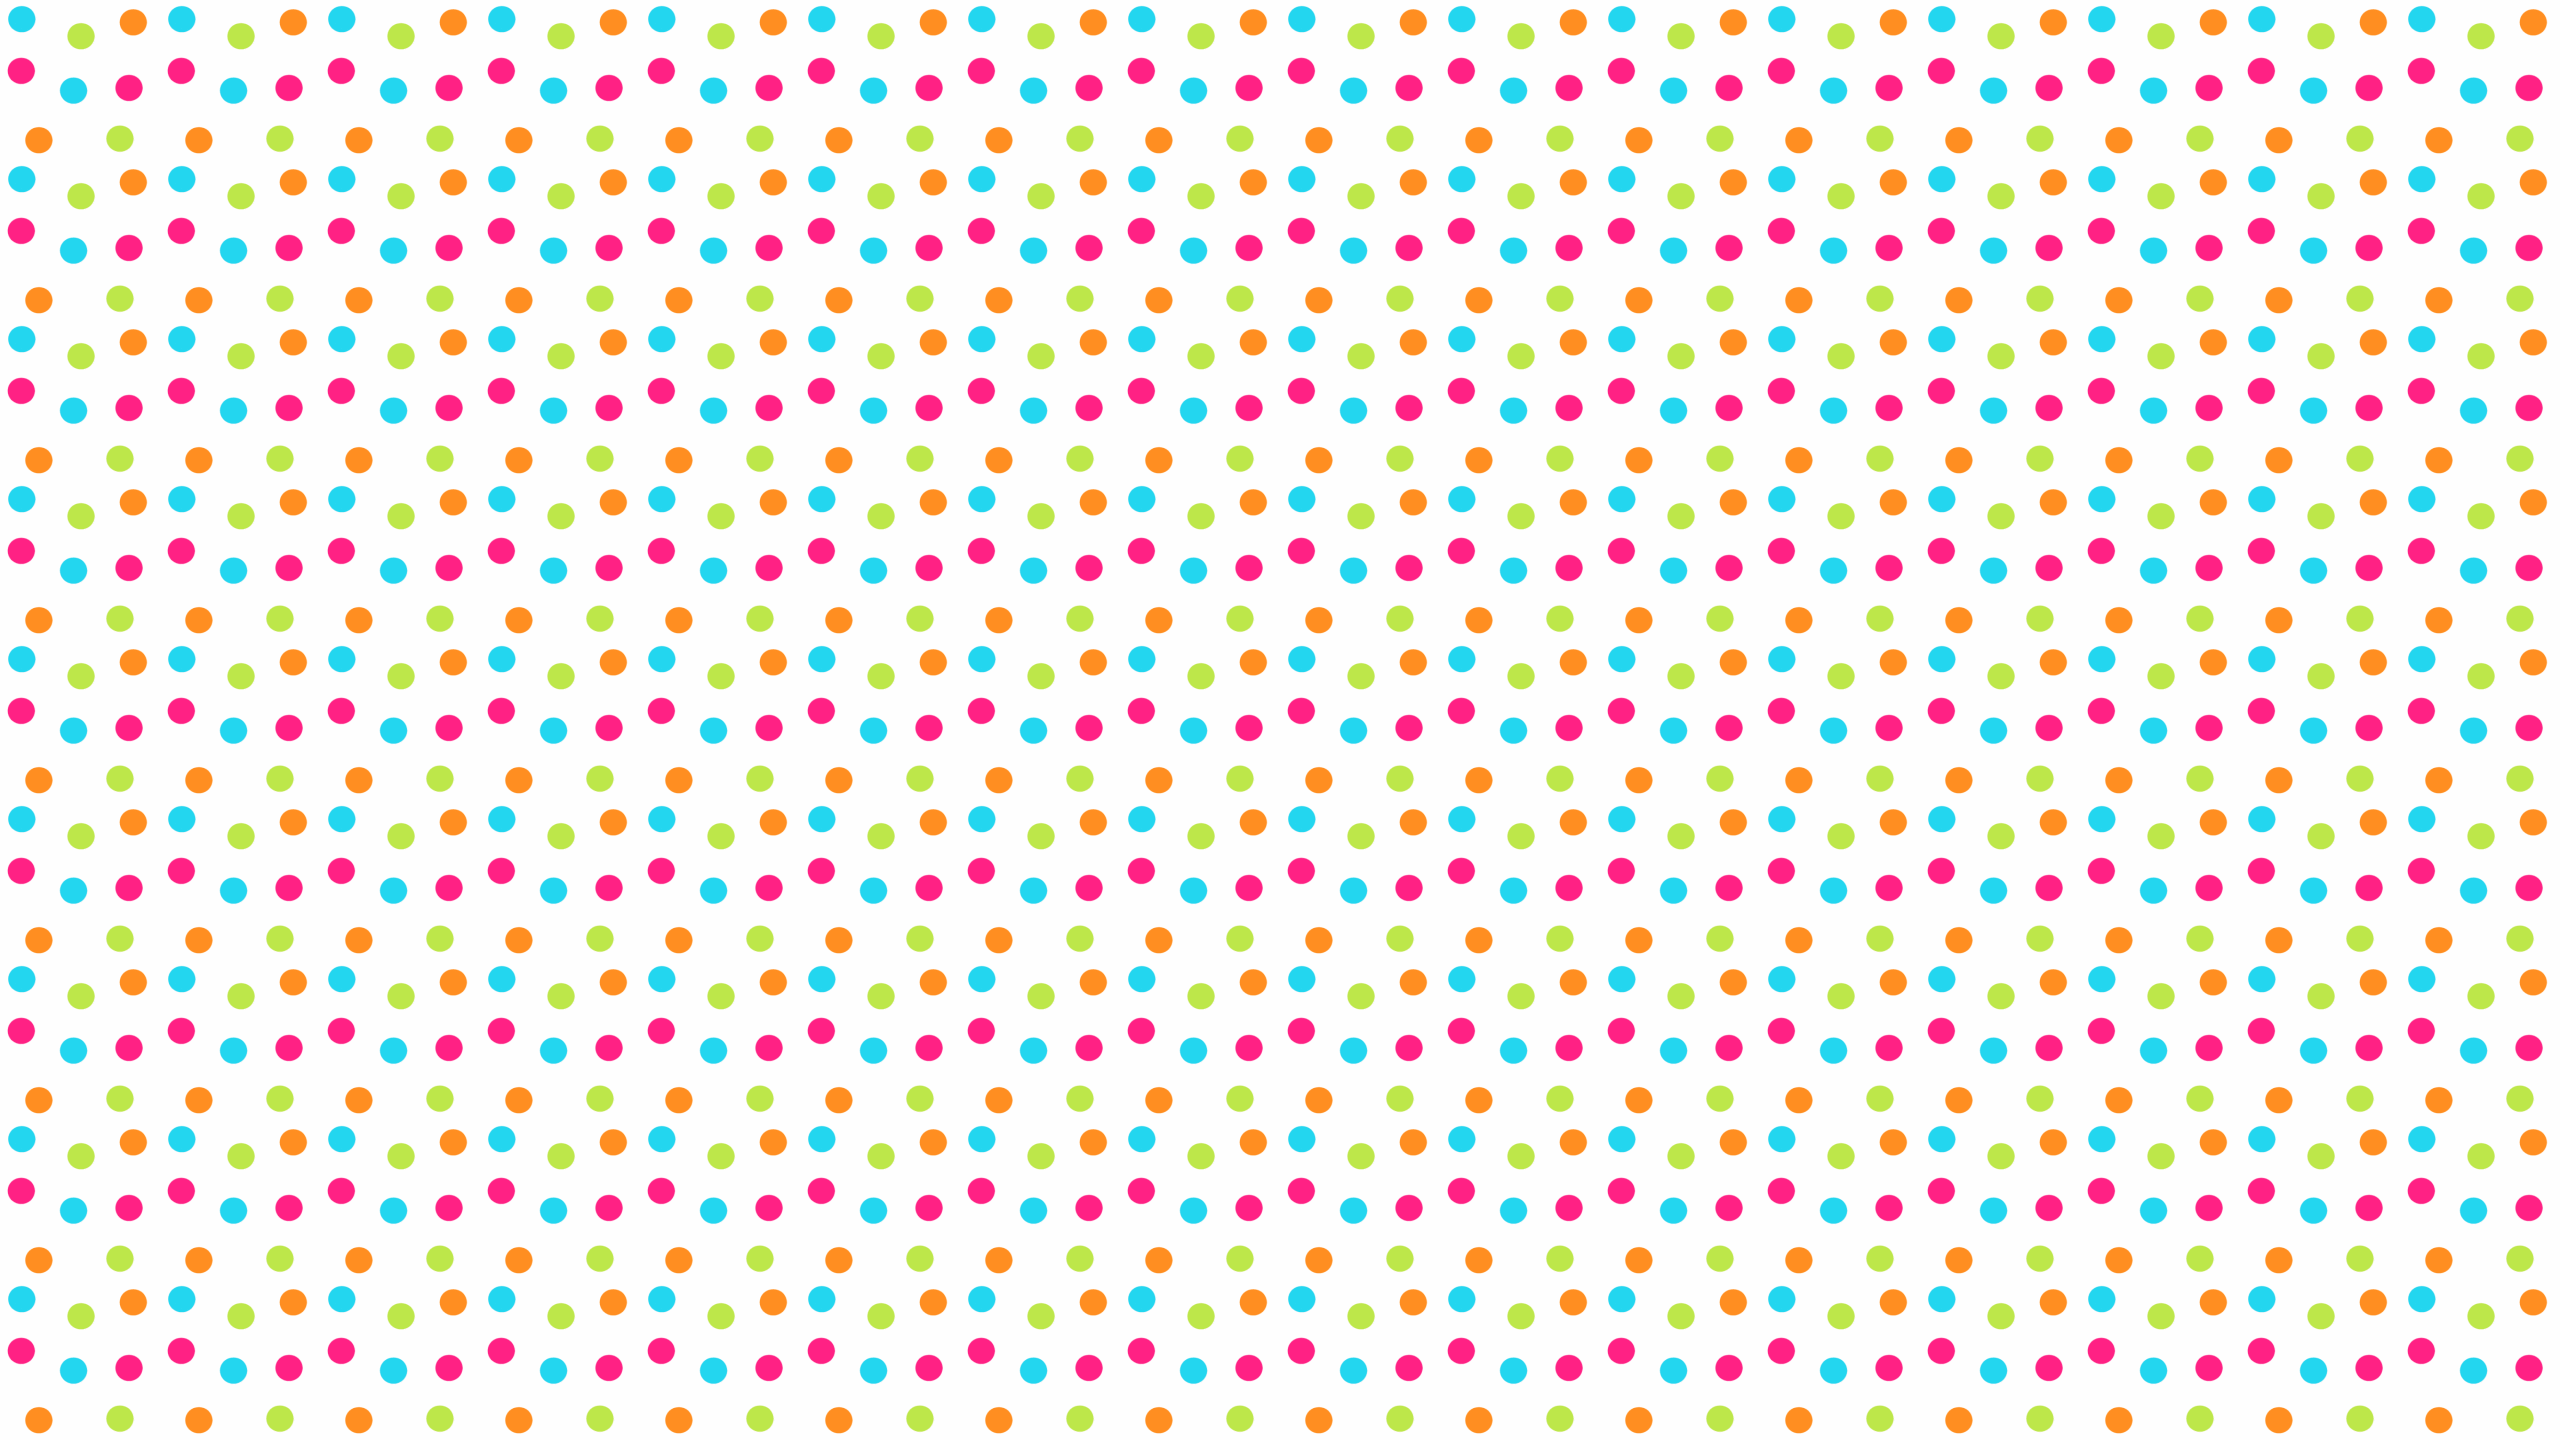 High Quality Dots Wallpaper | Full HD Wallpapers